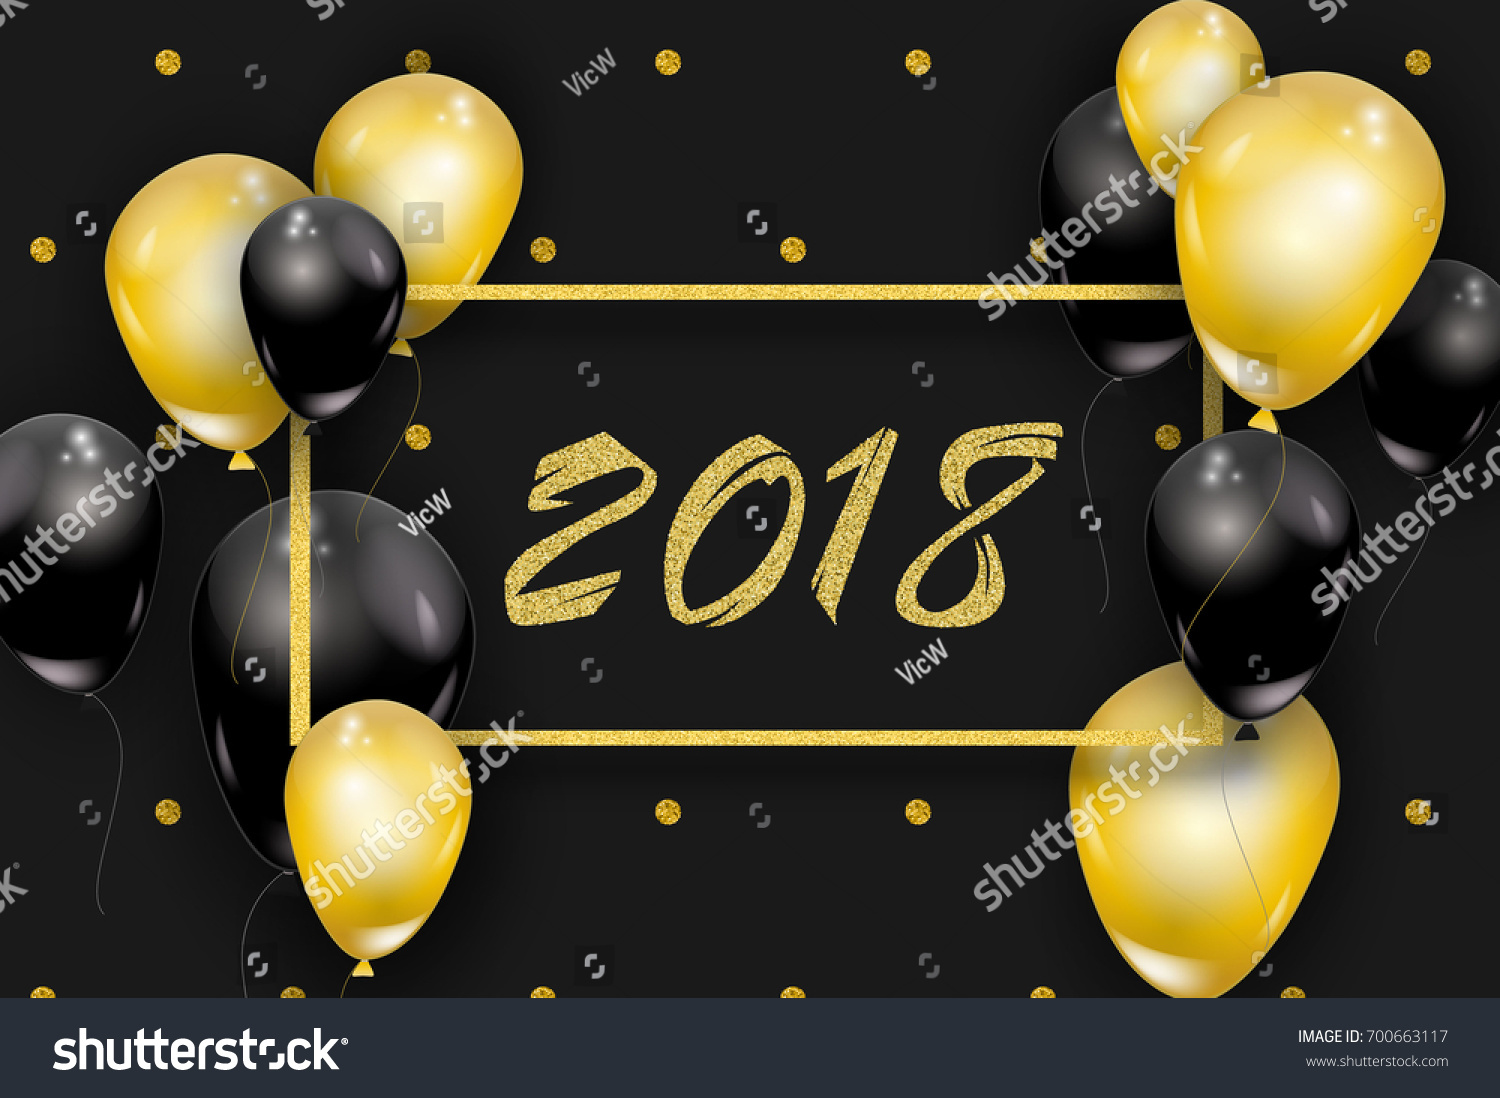 2018 happy new year background dots gold glitter frame golden black balloons